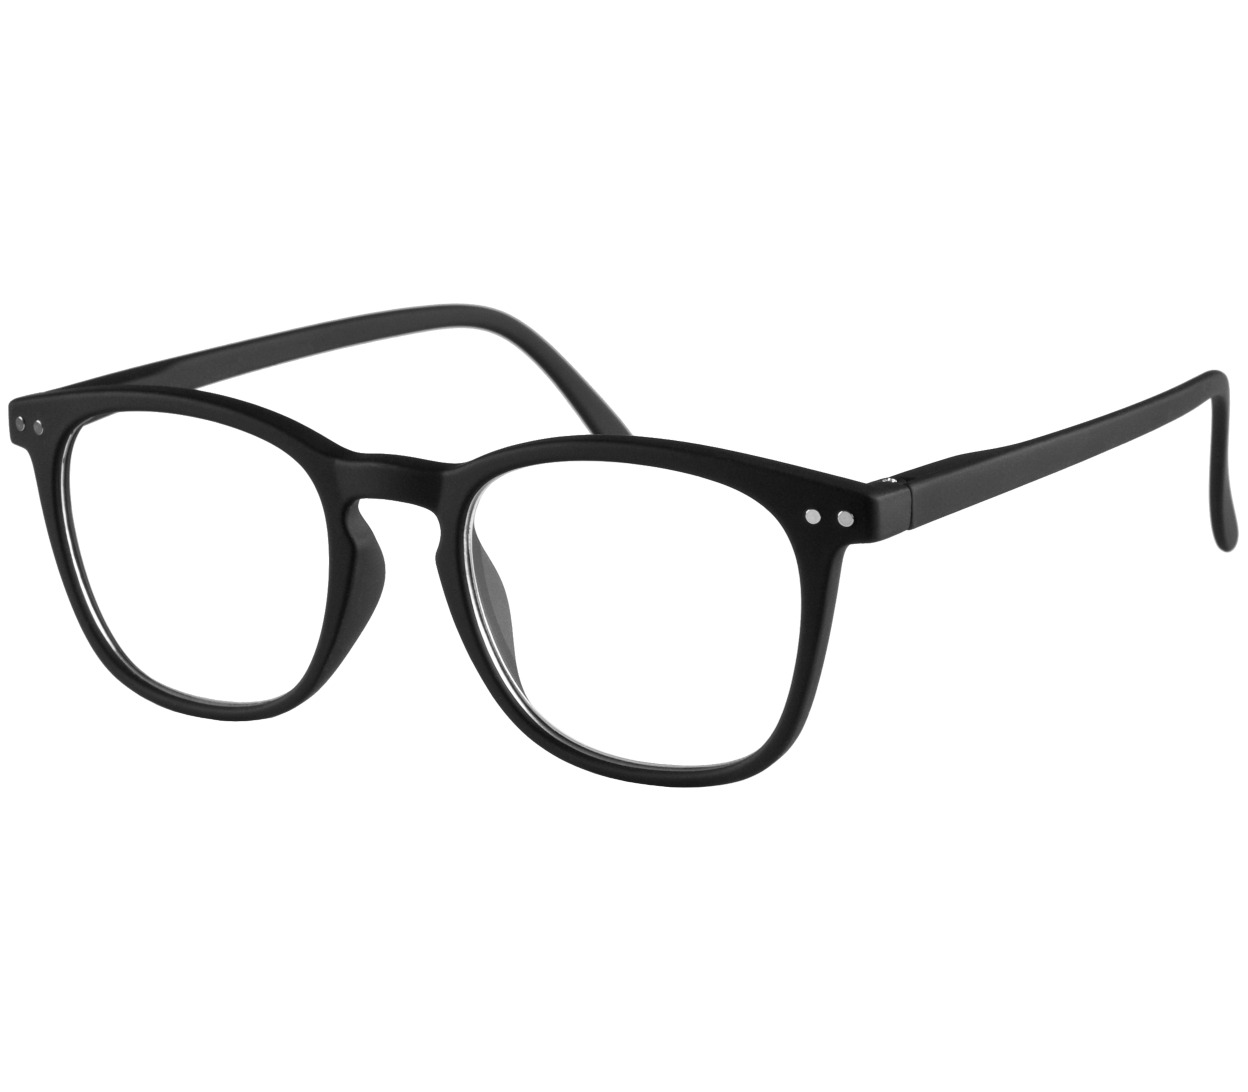 Main Image (Angle) - Scholar (Black) Retro Reading Glasses